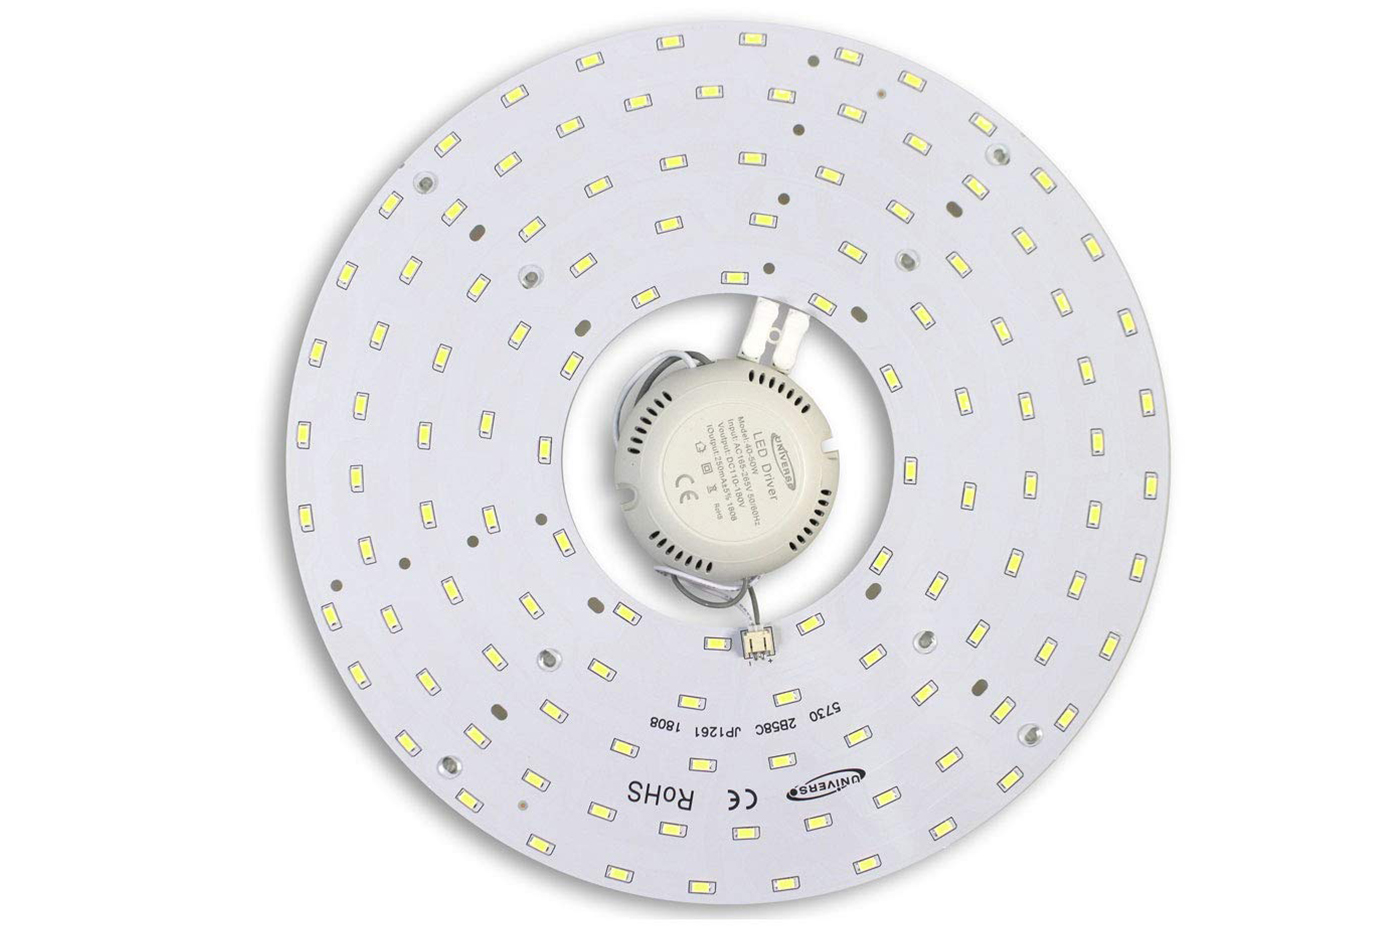 Ricambi Per Plafoniere Neon : Bes 25906 plafoniere beselettronica corona led smd